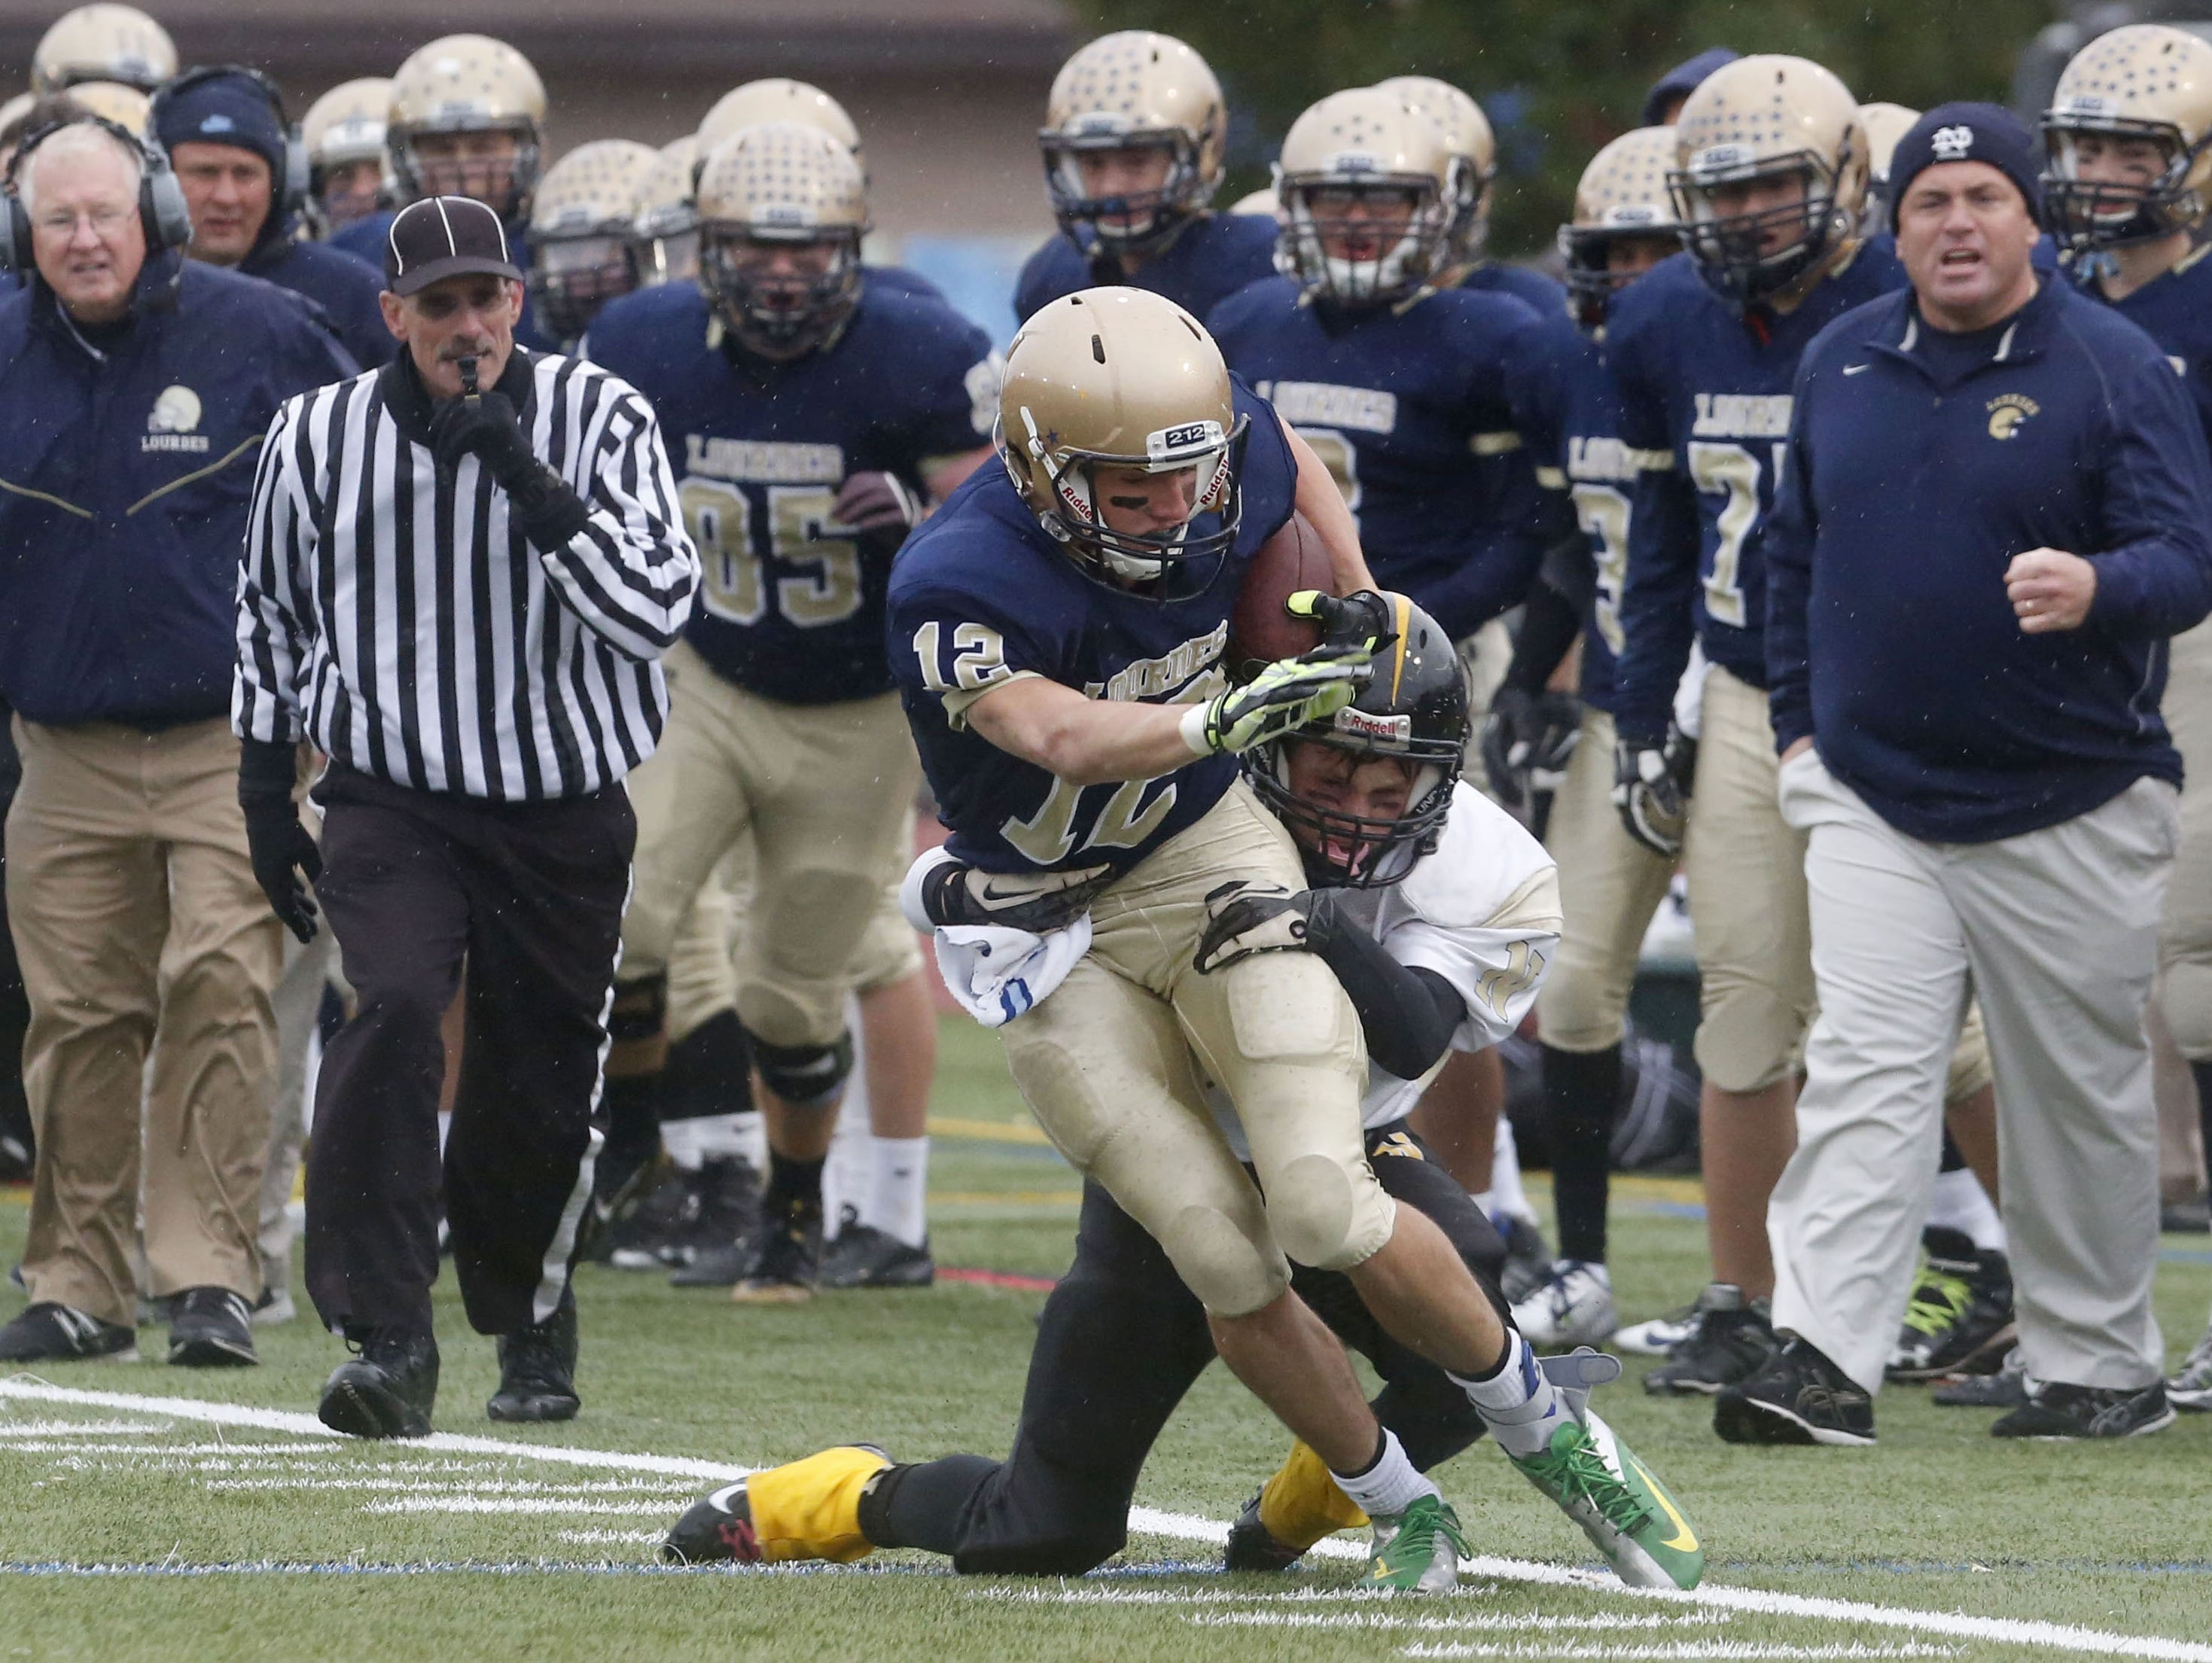 Our Lady of Lourdes High School's Luke Timm tries to break a tackle during last season's Section 1 Class B final against Nanuet.